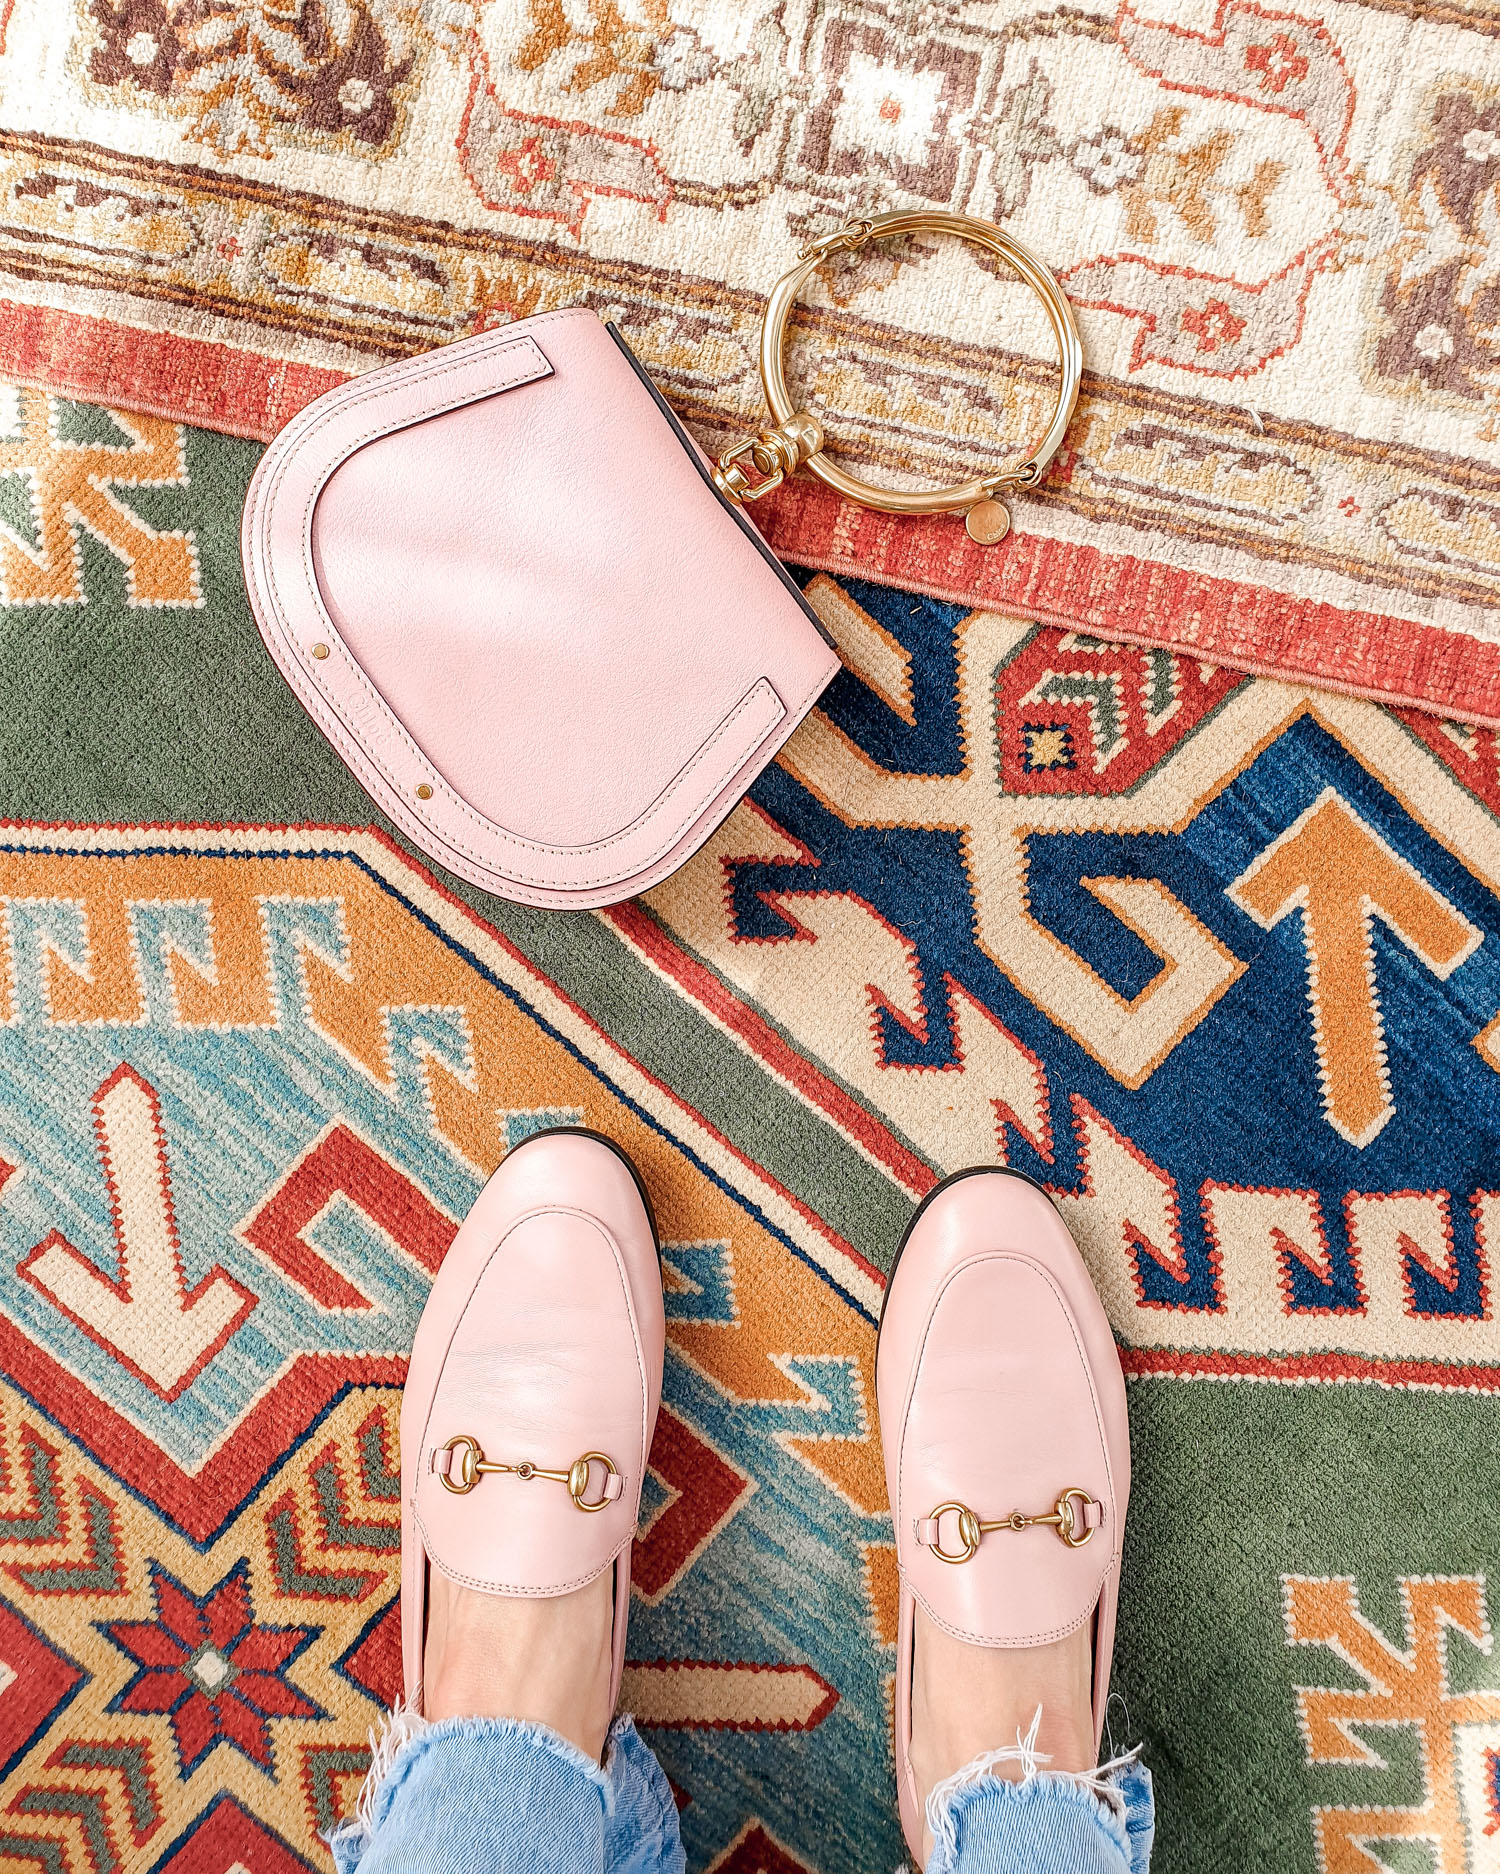 Accessories | Pink Chloe Nile and pink Gucci Loafers